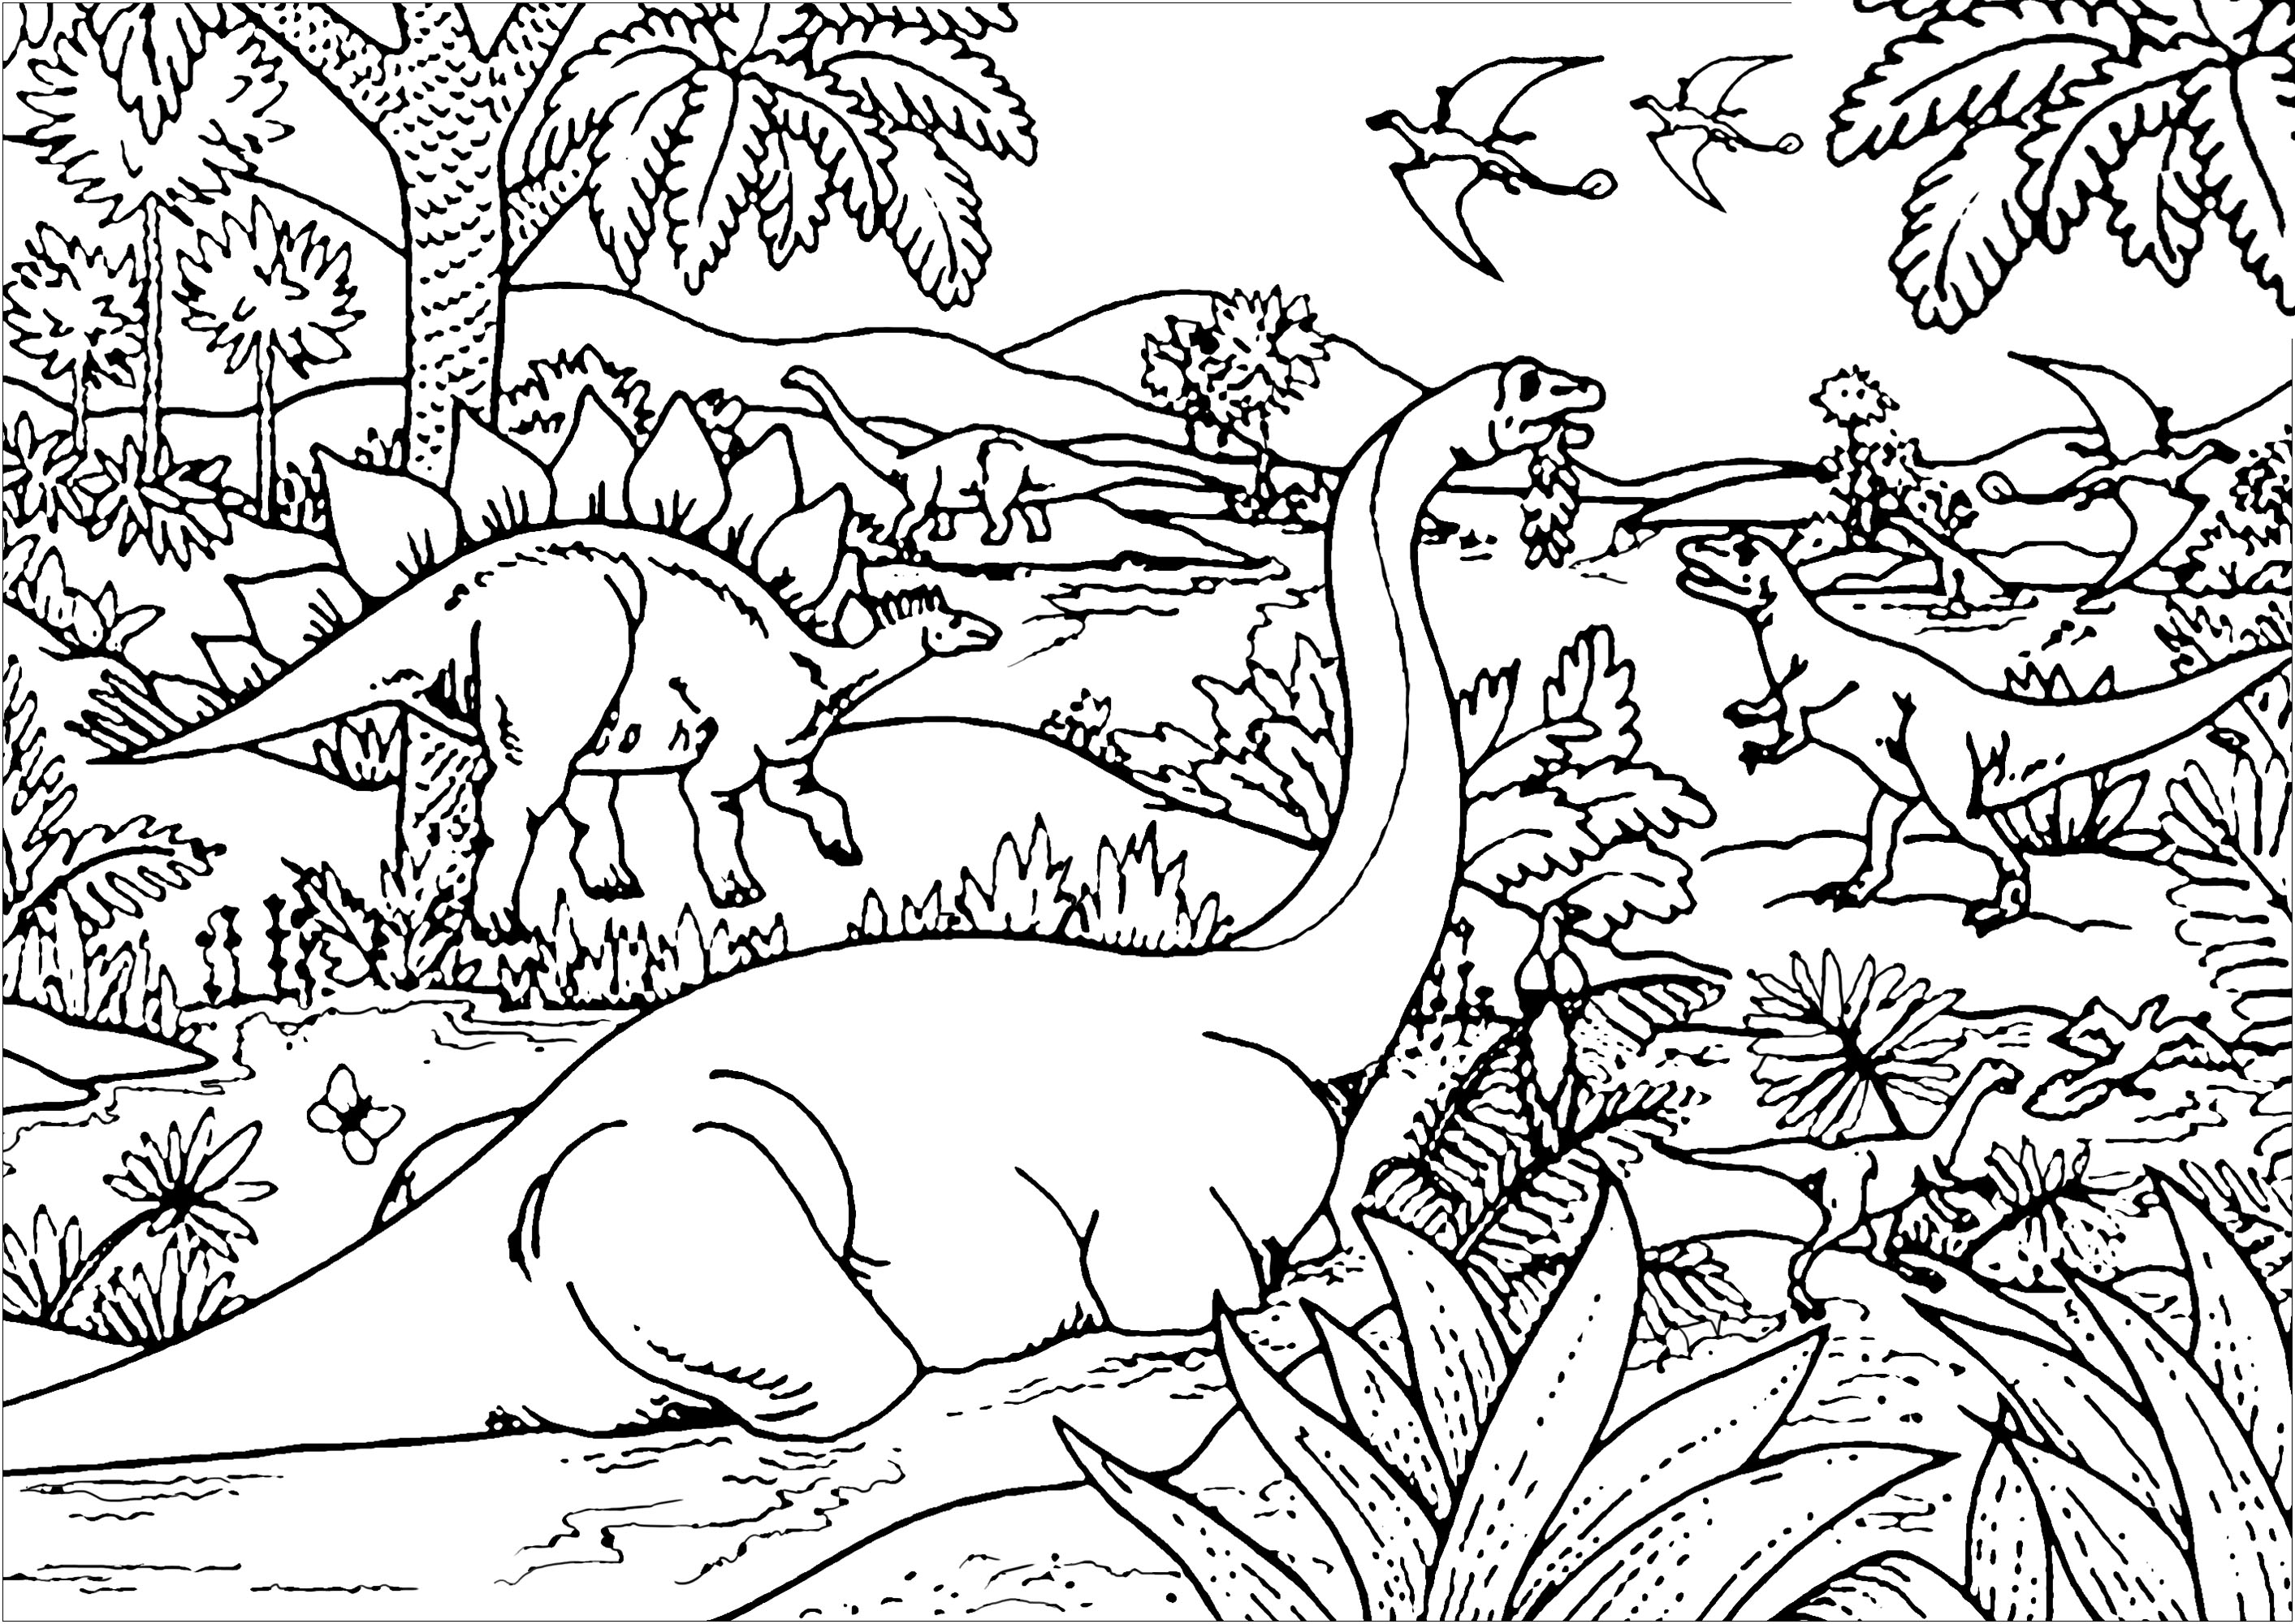 Color all there different types of Dinosaurs : Diplodocus, Tyrannosaurus, Stegosaurus, Pterodactyl ...